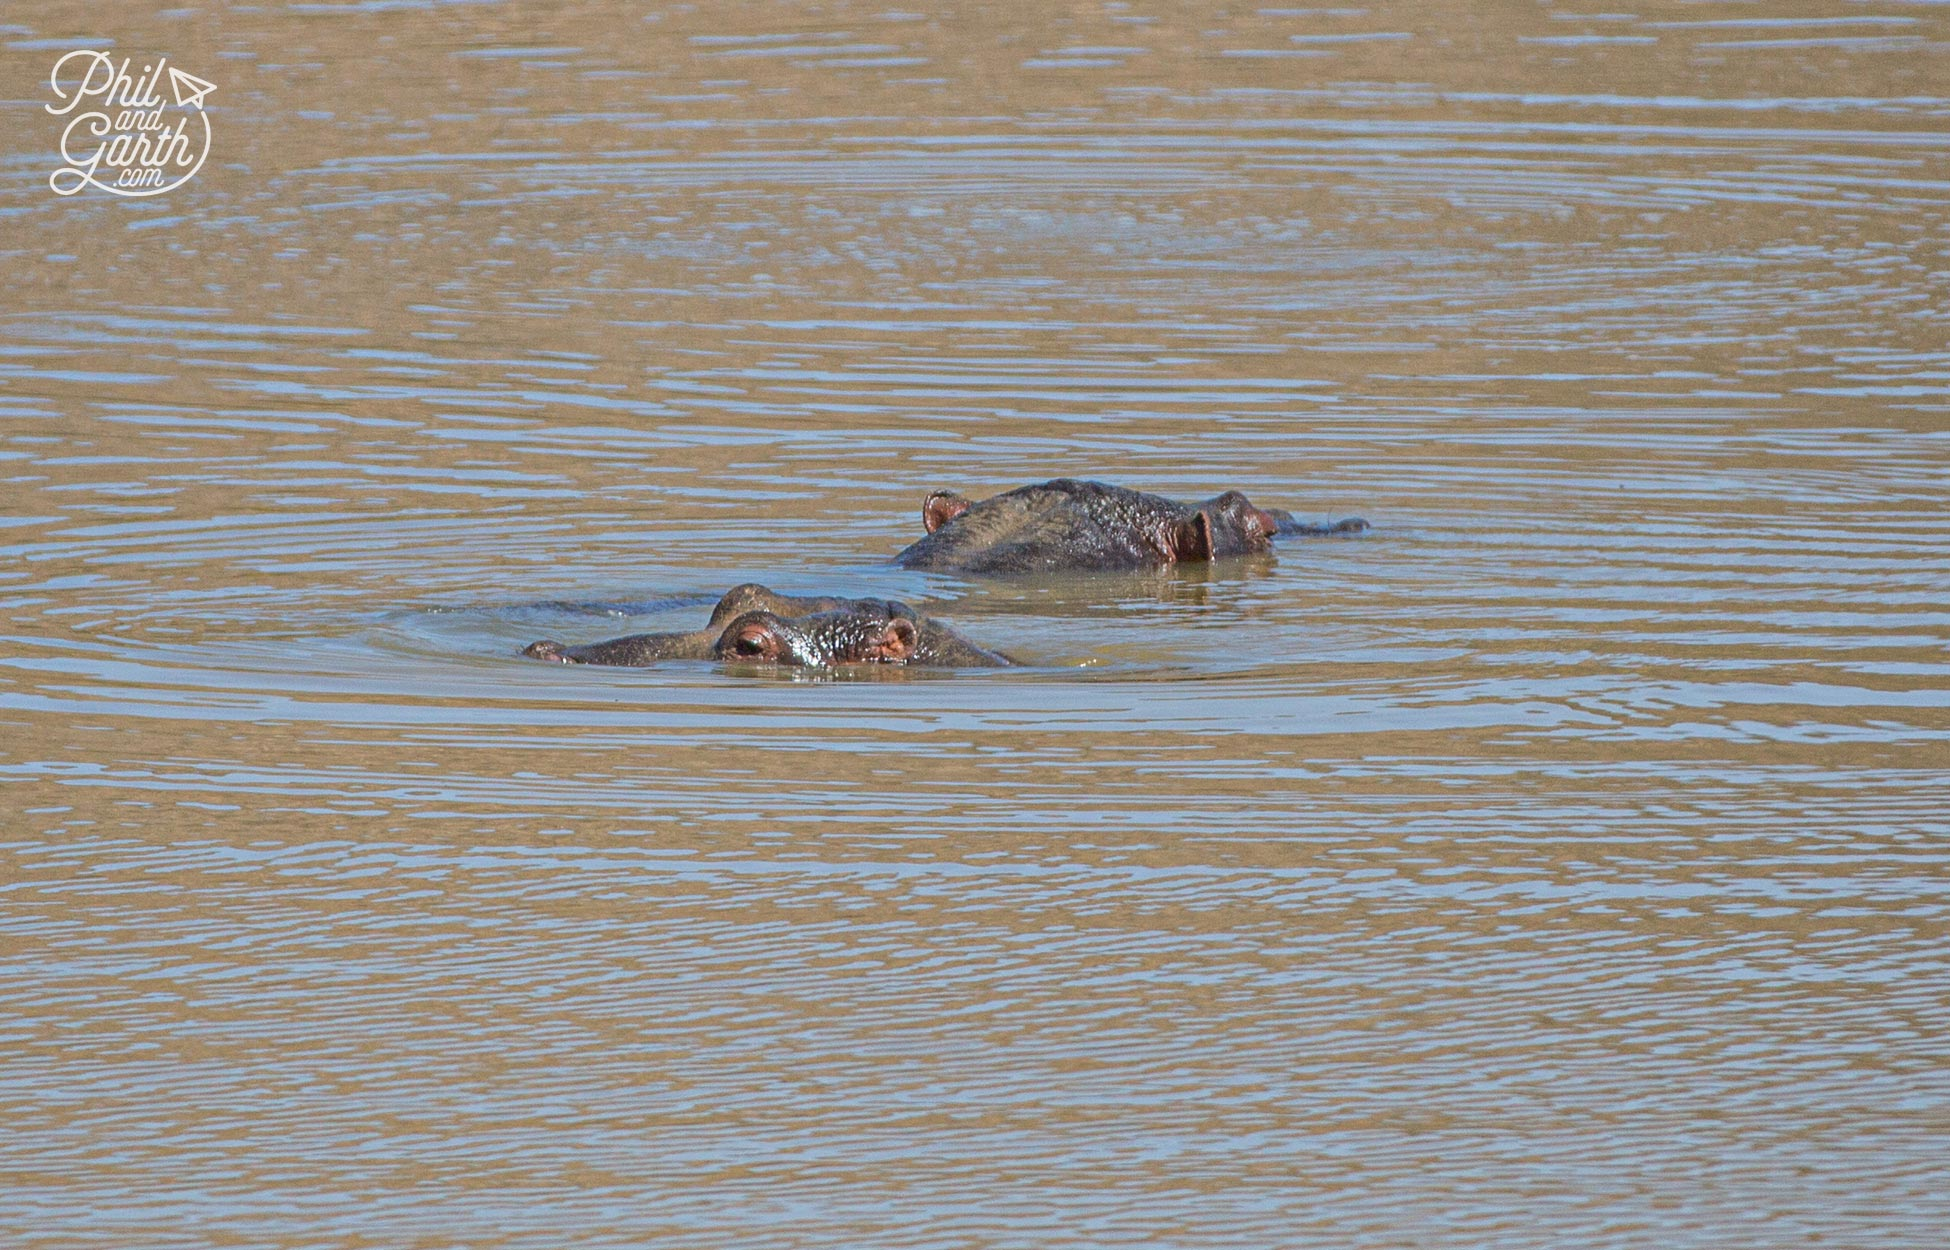 A couple of hippos in the lake